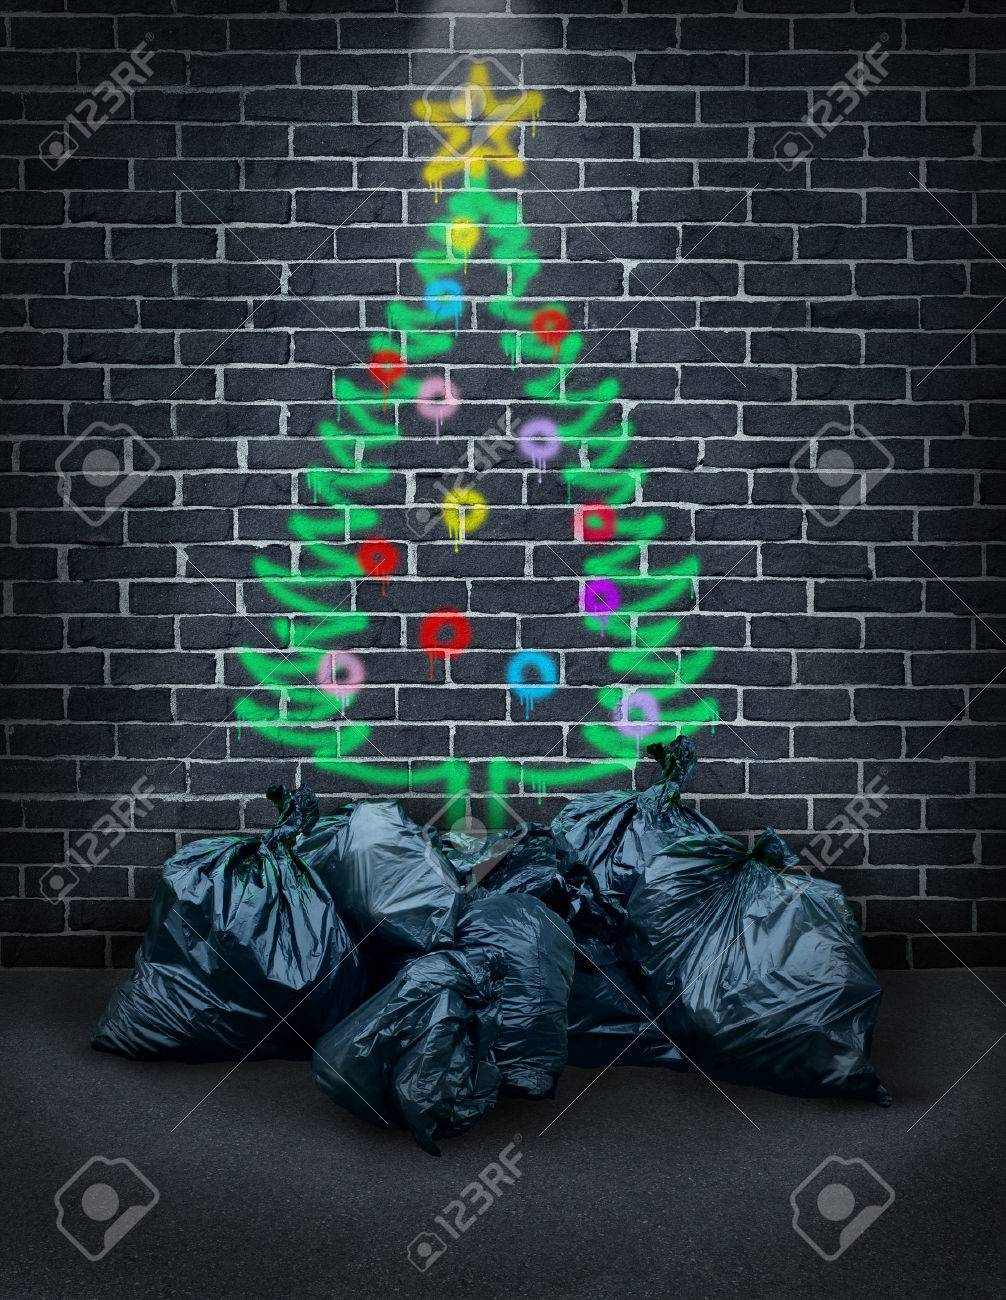 Poverty During The Holidays As A Concept For Social Issues Of ...